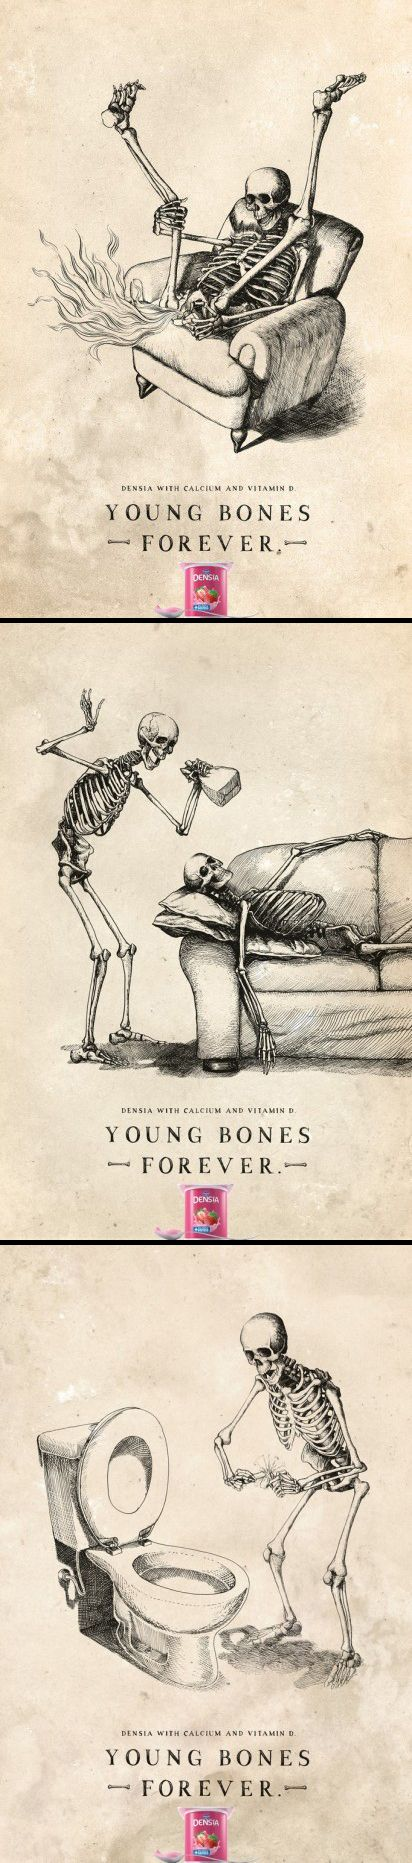 """""""Danone Densia with calcium and vitamin D. Young bones forever."""""""